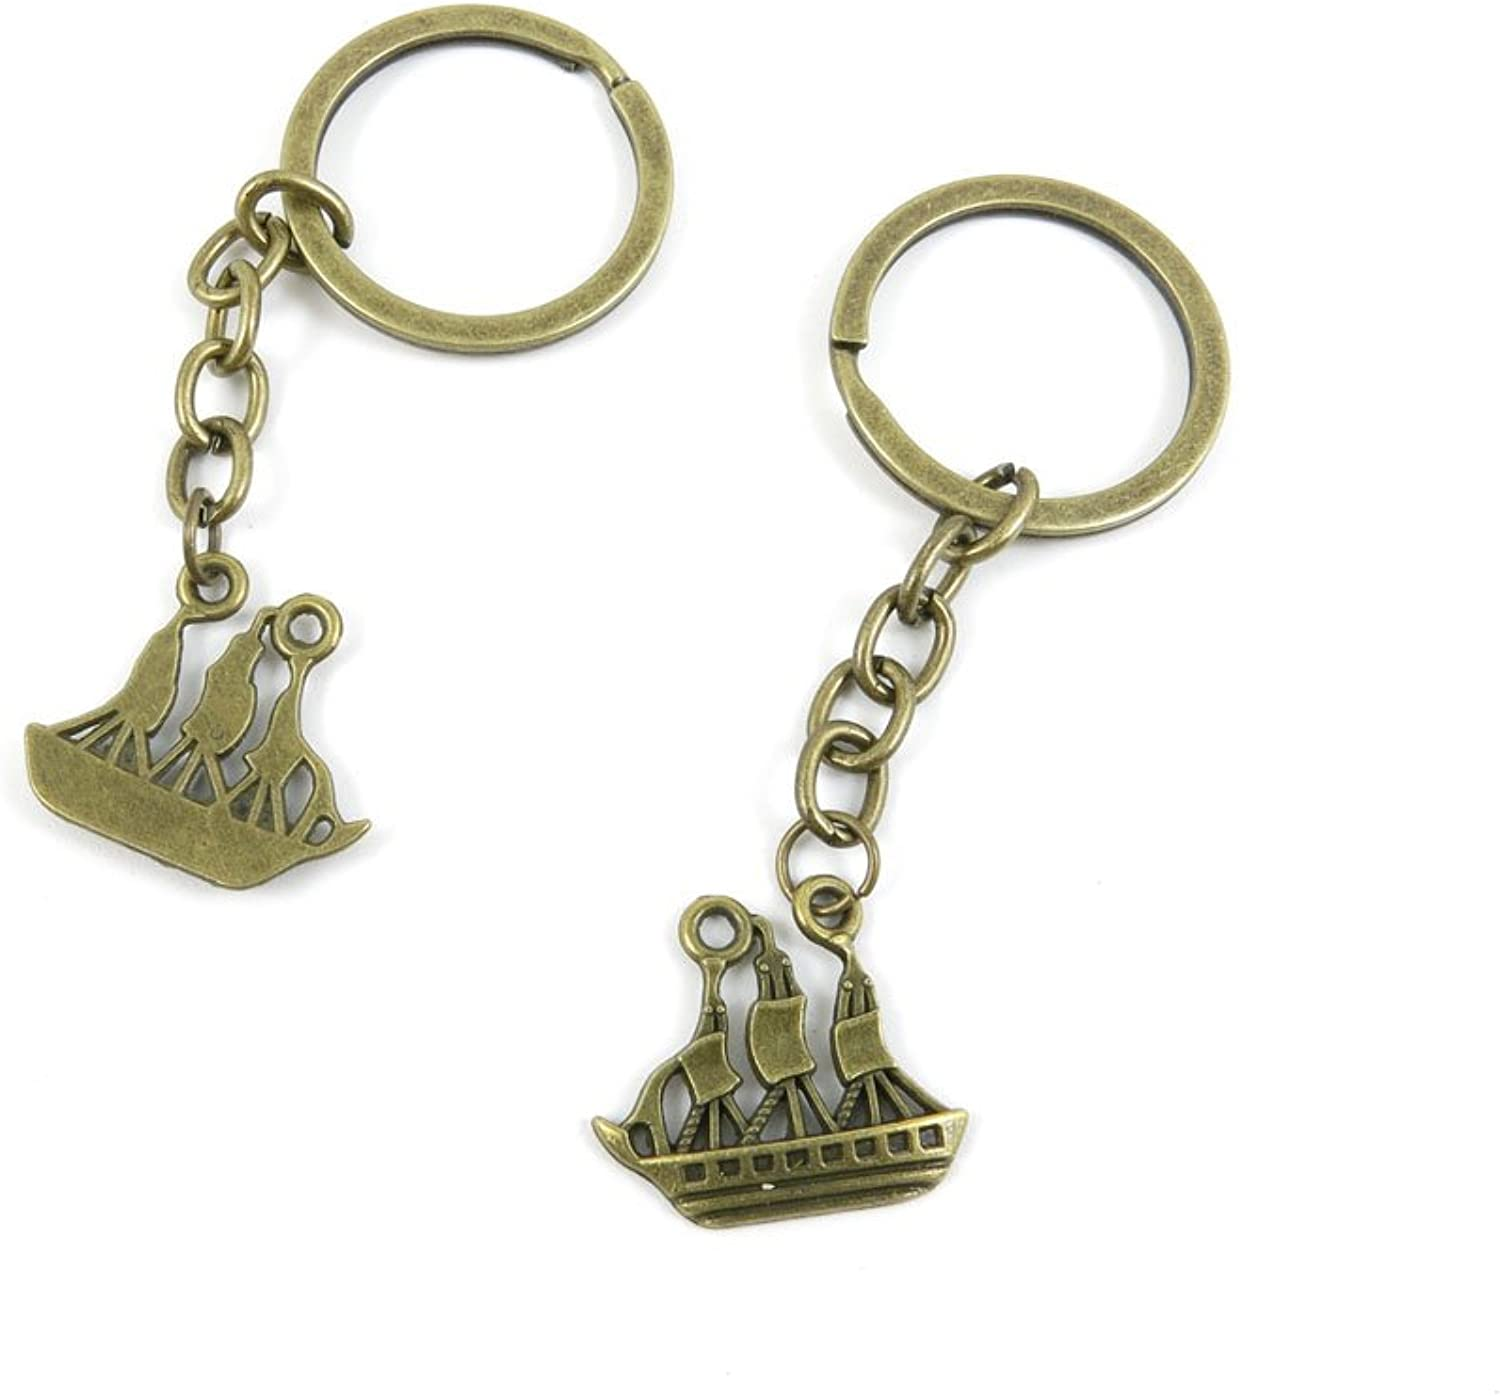 190 Pieces Fashion Jewelry Keyring Keychain Door Car Key Tag Ring Chain Supplier Supply Wholesale Bulk Lots G6WN3 Sailboat Sailing Boat